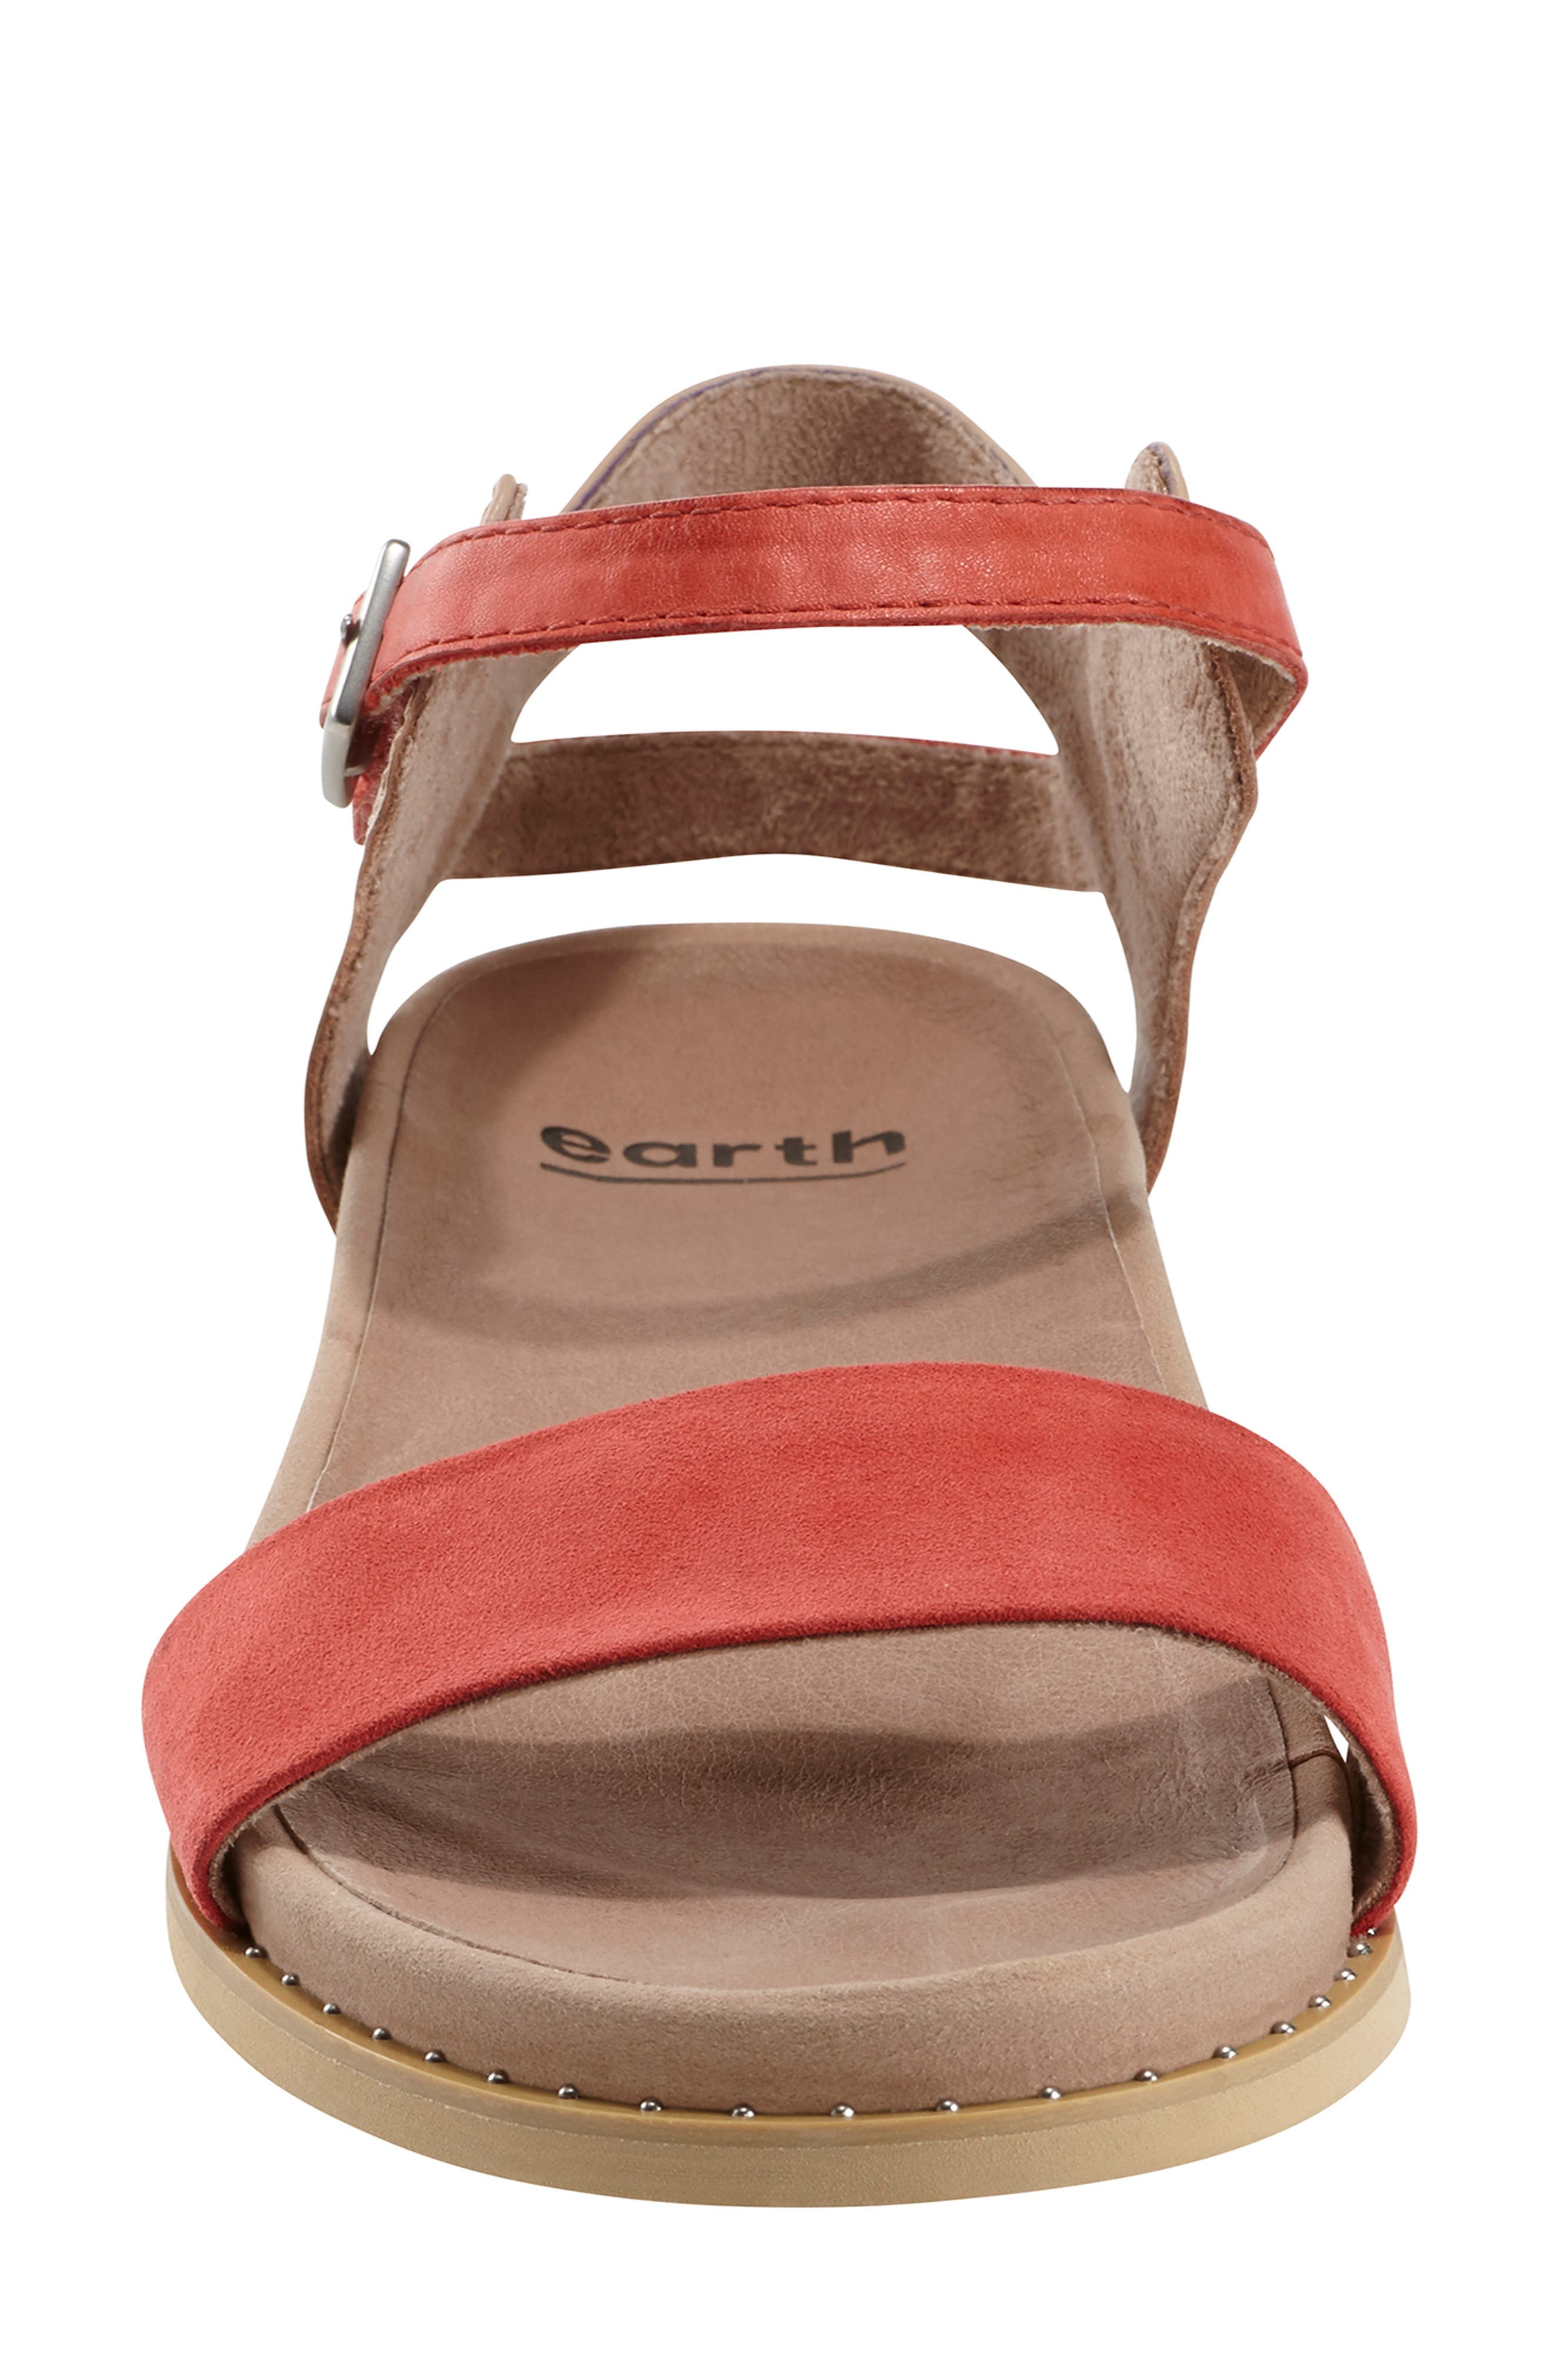 EARTH<SUP>®</SUP>, Cameo Sandal, Alternate thumbnail 4, color, BRIGHT CORAL SUEDE